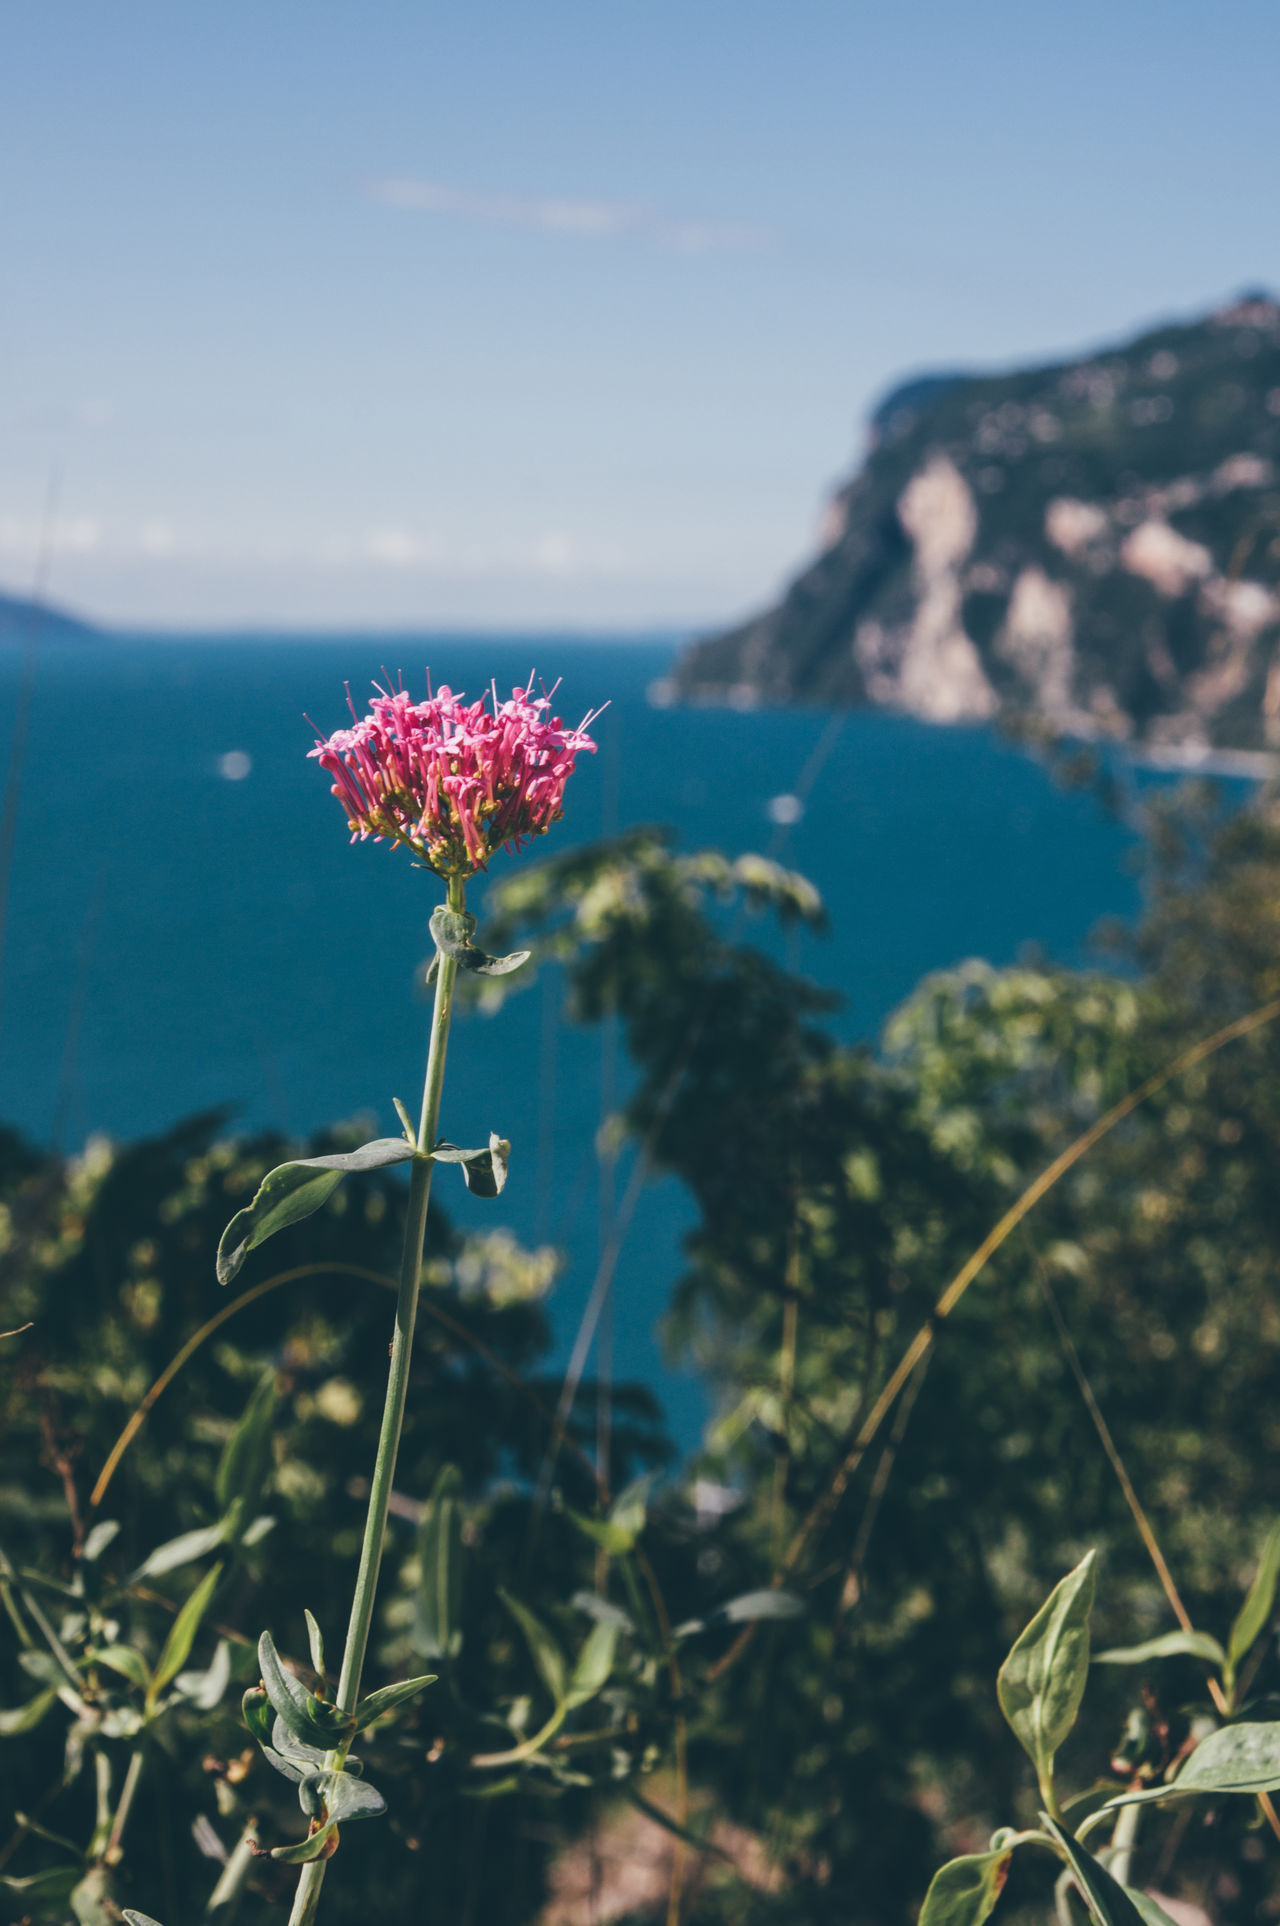 Beauty In Nature Blooming Blossom Blossoms  Close-up Day Flower Flower Head Focus On Foreground Fragility Freshness Growth Mediterranean  Mediterranean Sea Mountain Nature No People Outdoors Plant Sky Travel Zinnia